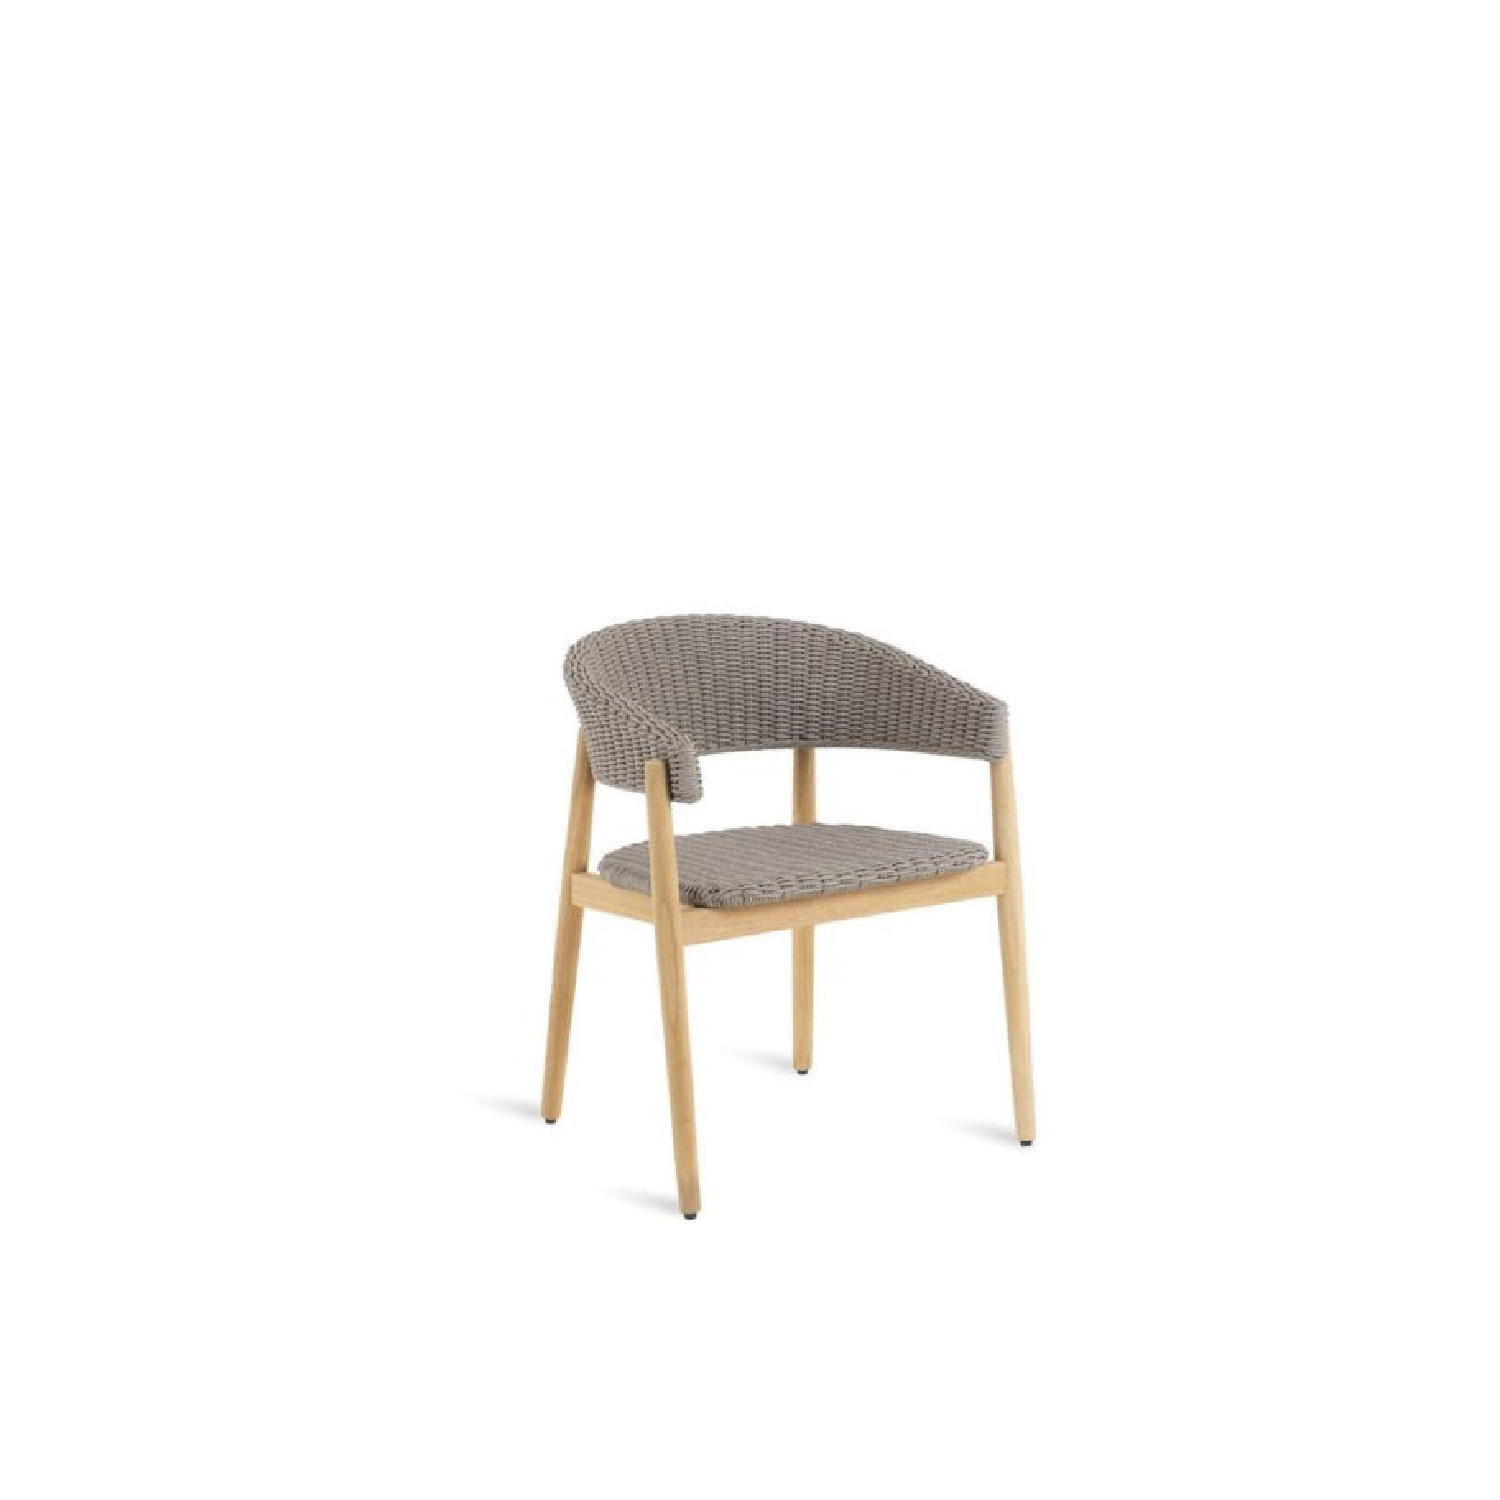 Pevero Small Armchair In Teak and Cord - The new really complete Pevero line exalts all the potential of teak, thanks to its clean essential design that highlights the round section of the wood.  Sofas, armchairs, tables both low and tall of various sizes, three different models of the chair and small armchair that are all well suited to other collections, as well as a sun lounger and a large round island, all characterized by teak worked in soft, rounded, graceful lines that are easy on the eye and guarantee maximum comfort, while tastefully furnishing any outdoor area.  Pevero small armchair in teak and cord (W 60 D 54 H 72 seat H 42).   Matter of Stuff